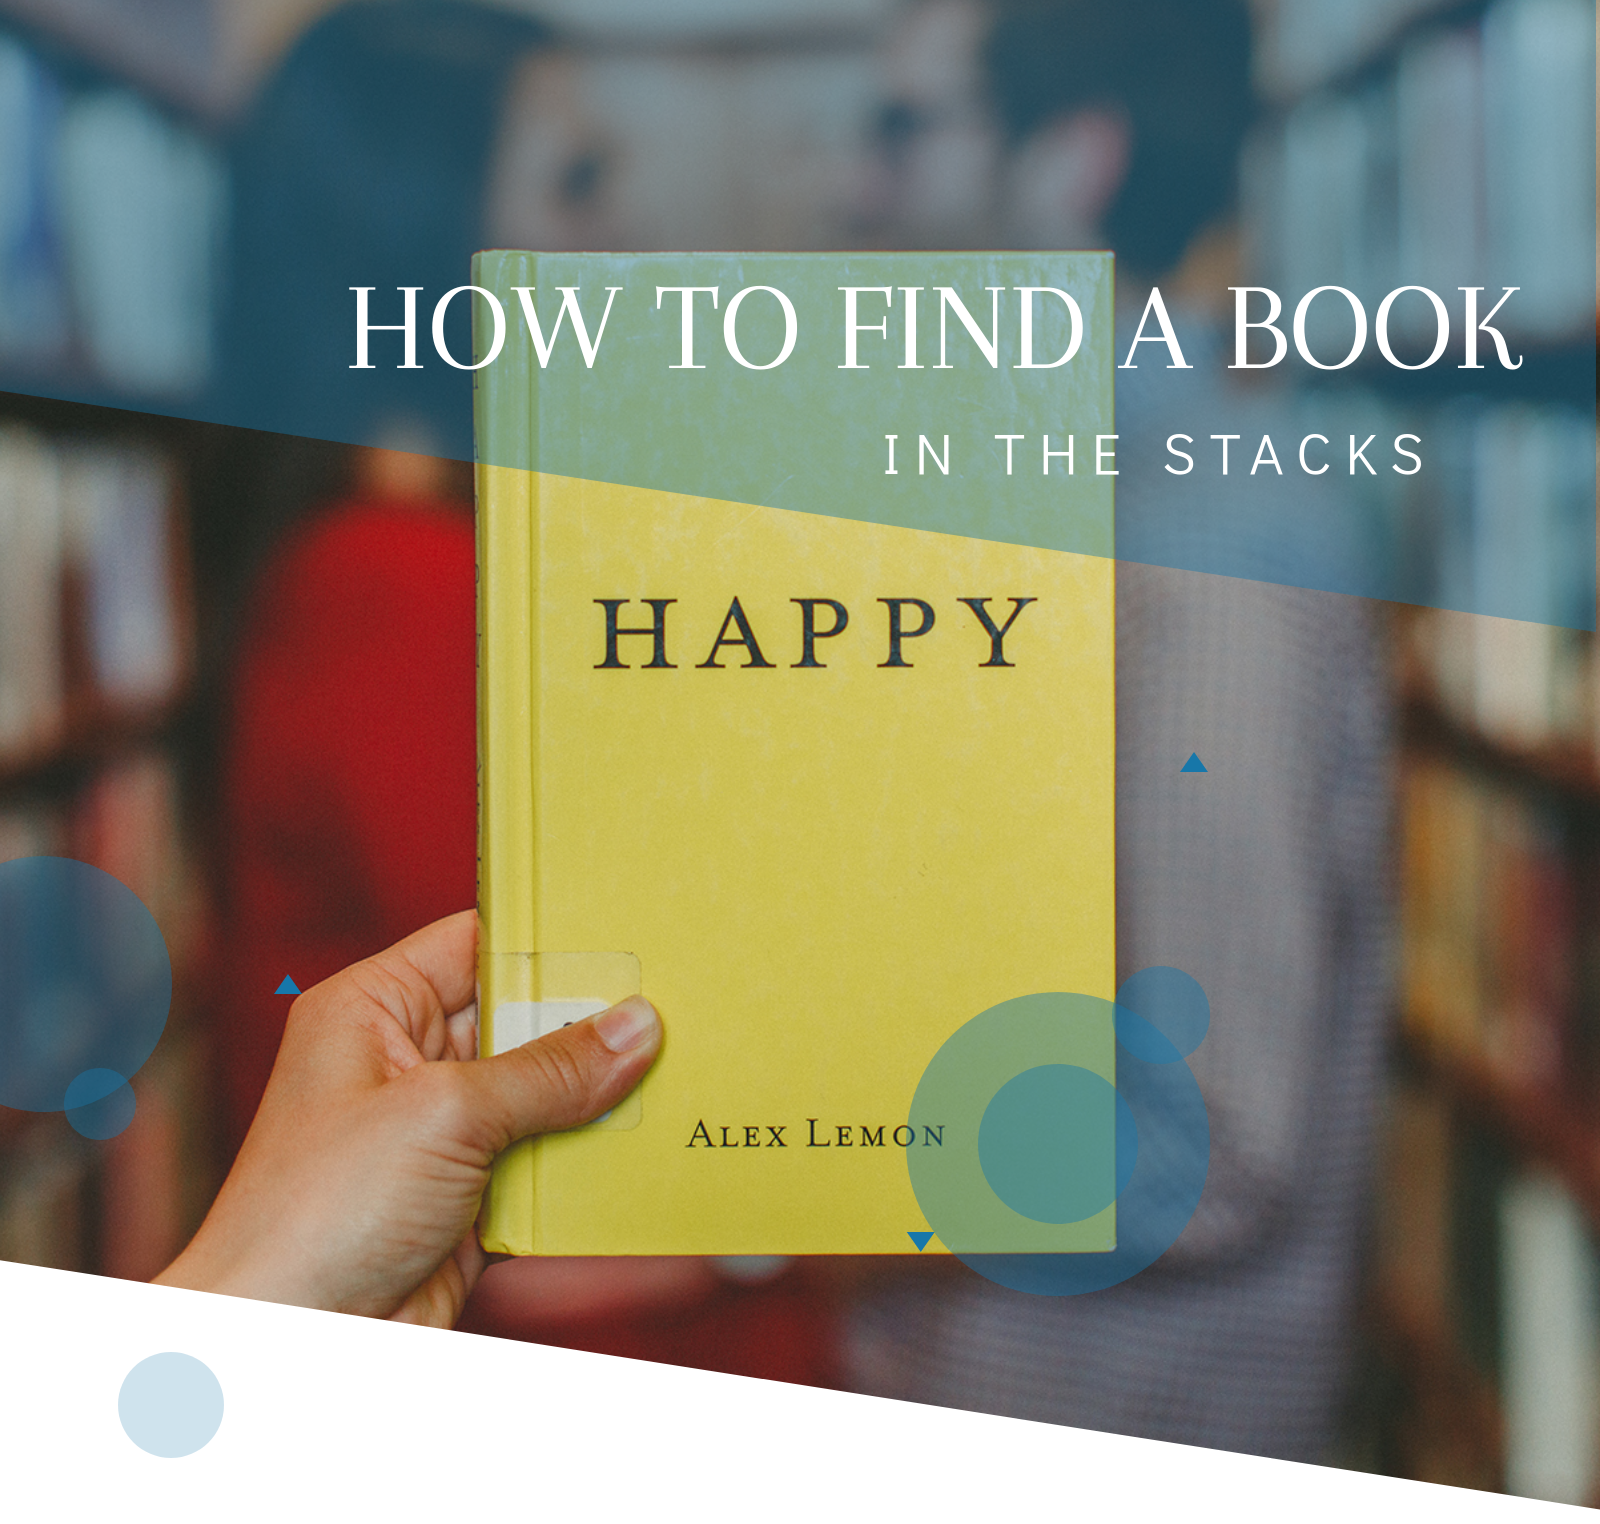 Finding Books Tutorial Image